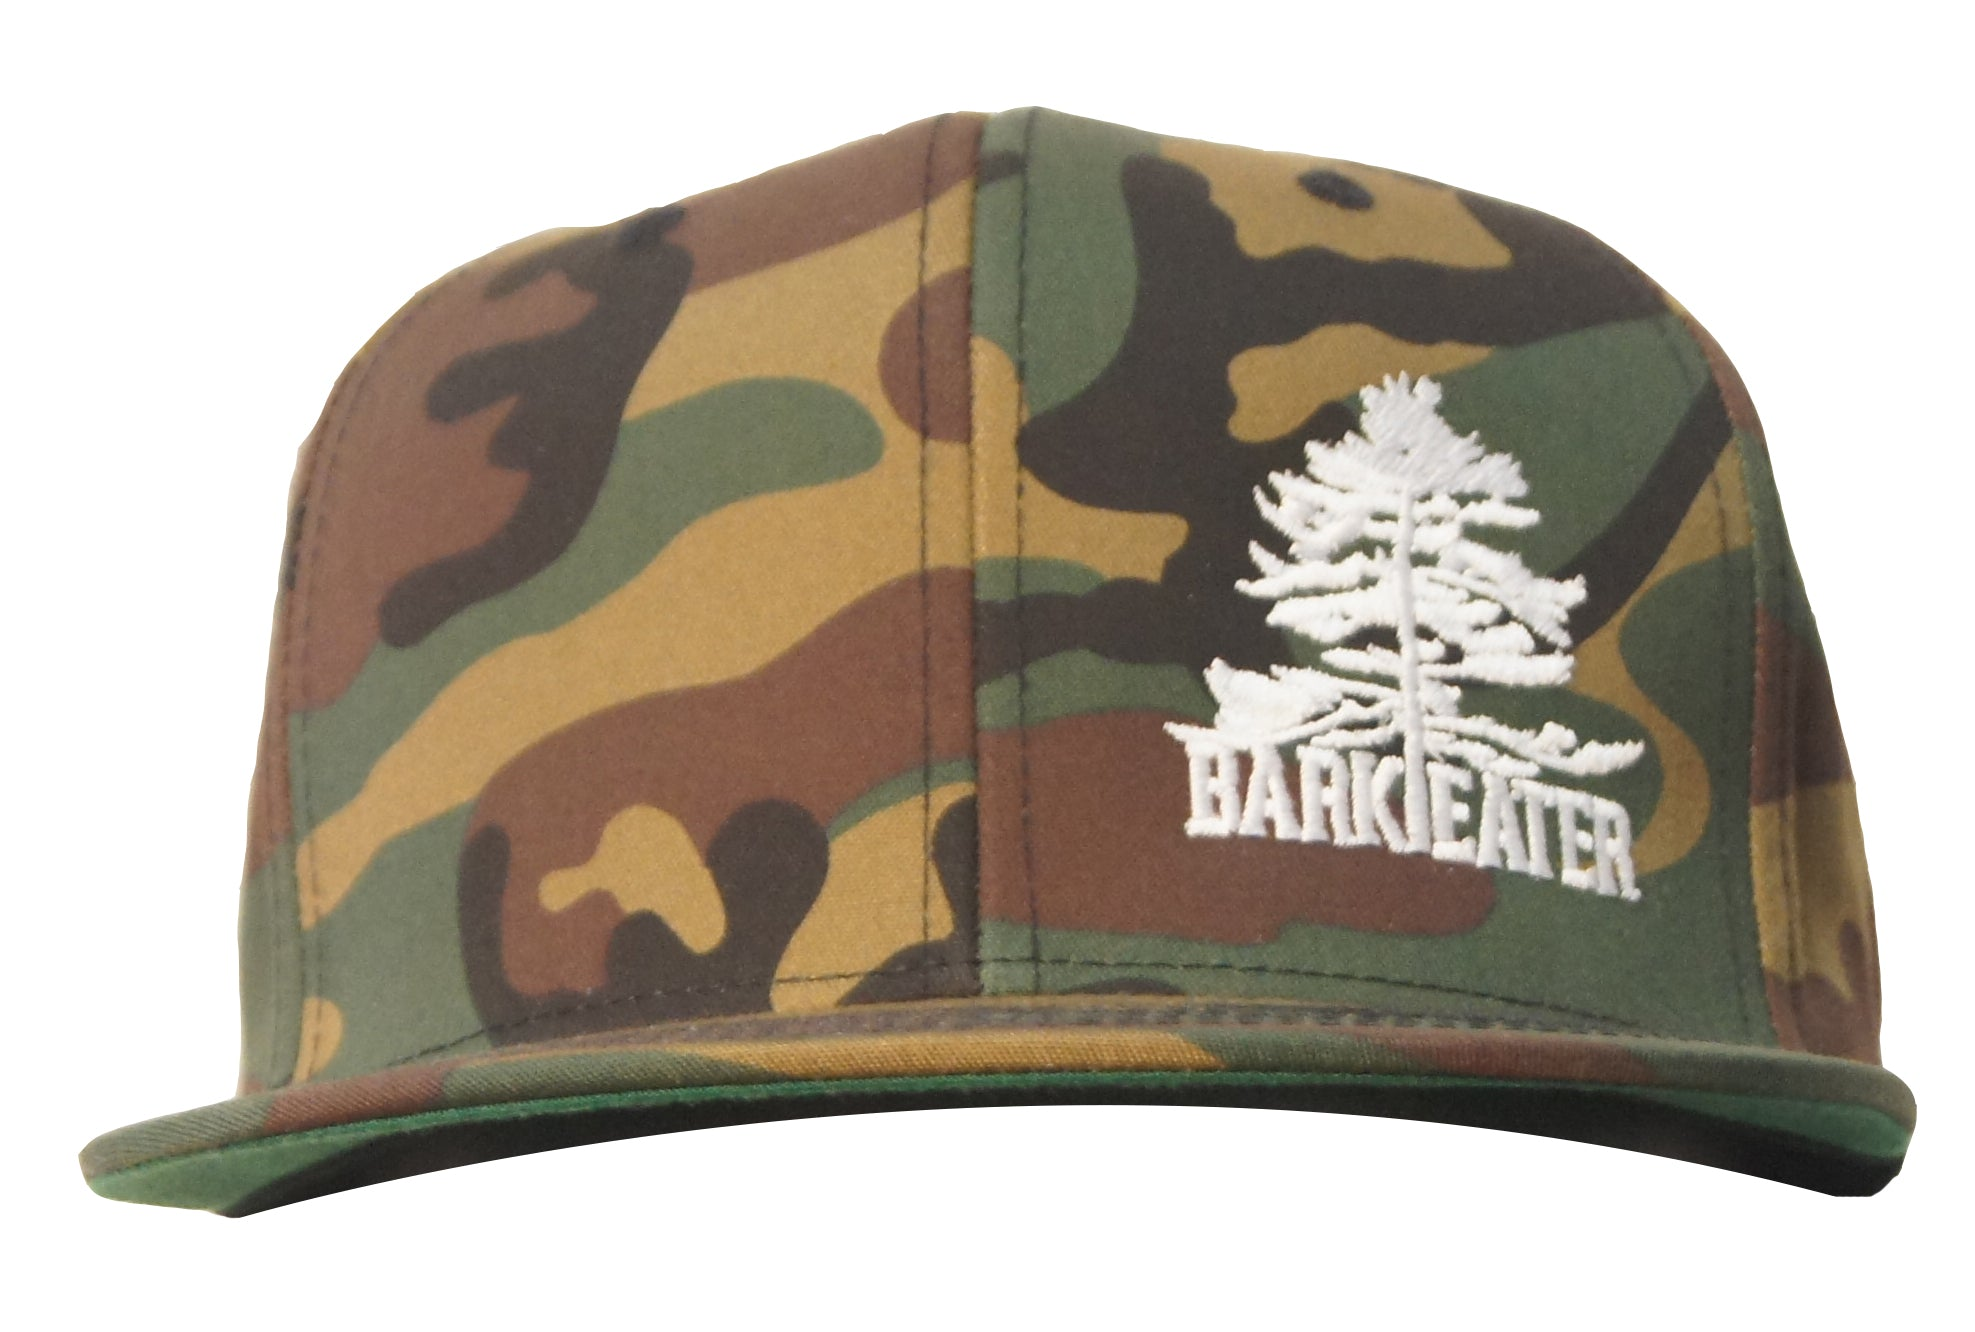 wool camo structured flat brim snapback hat with bark eater outfitter's logo (eastern white pine tree with the words Bark and Eater underneath). centered on the front right panel in white embroidery